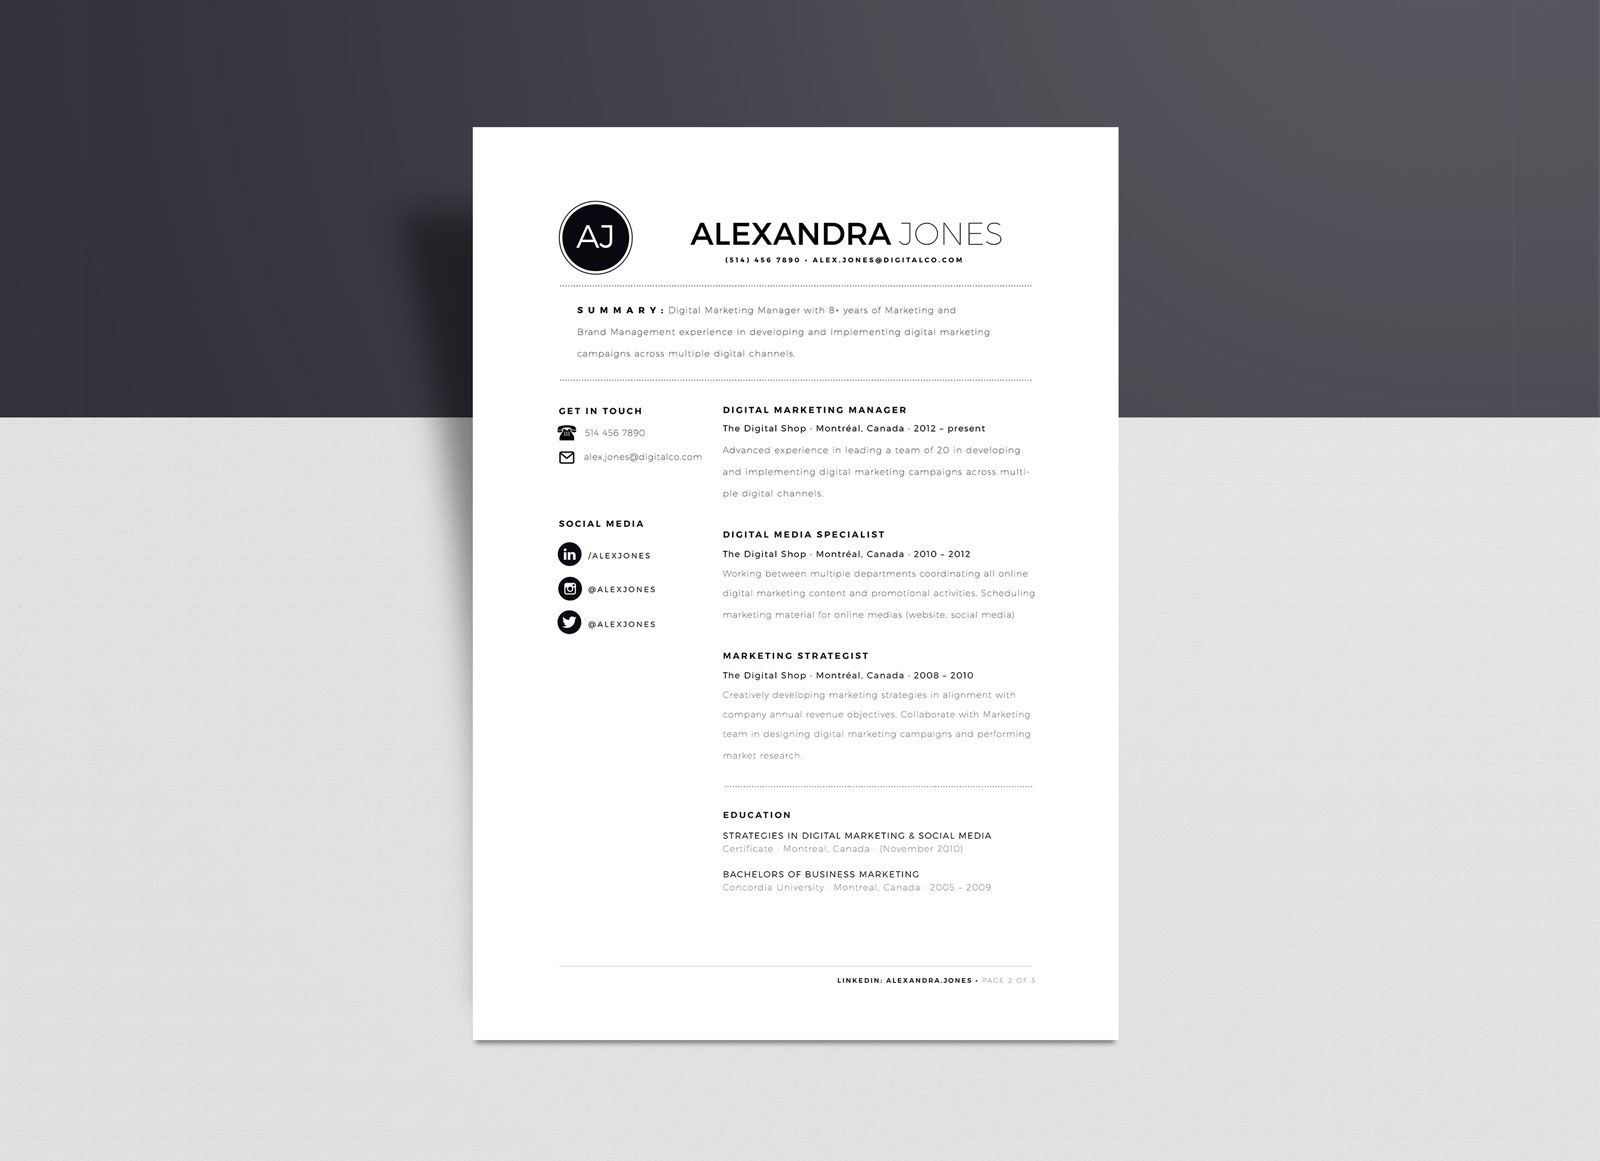 002 Archaicawful Free Cv Template Word Design  Download South Africa In Format OnlineFull